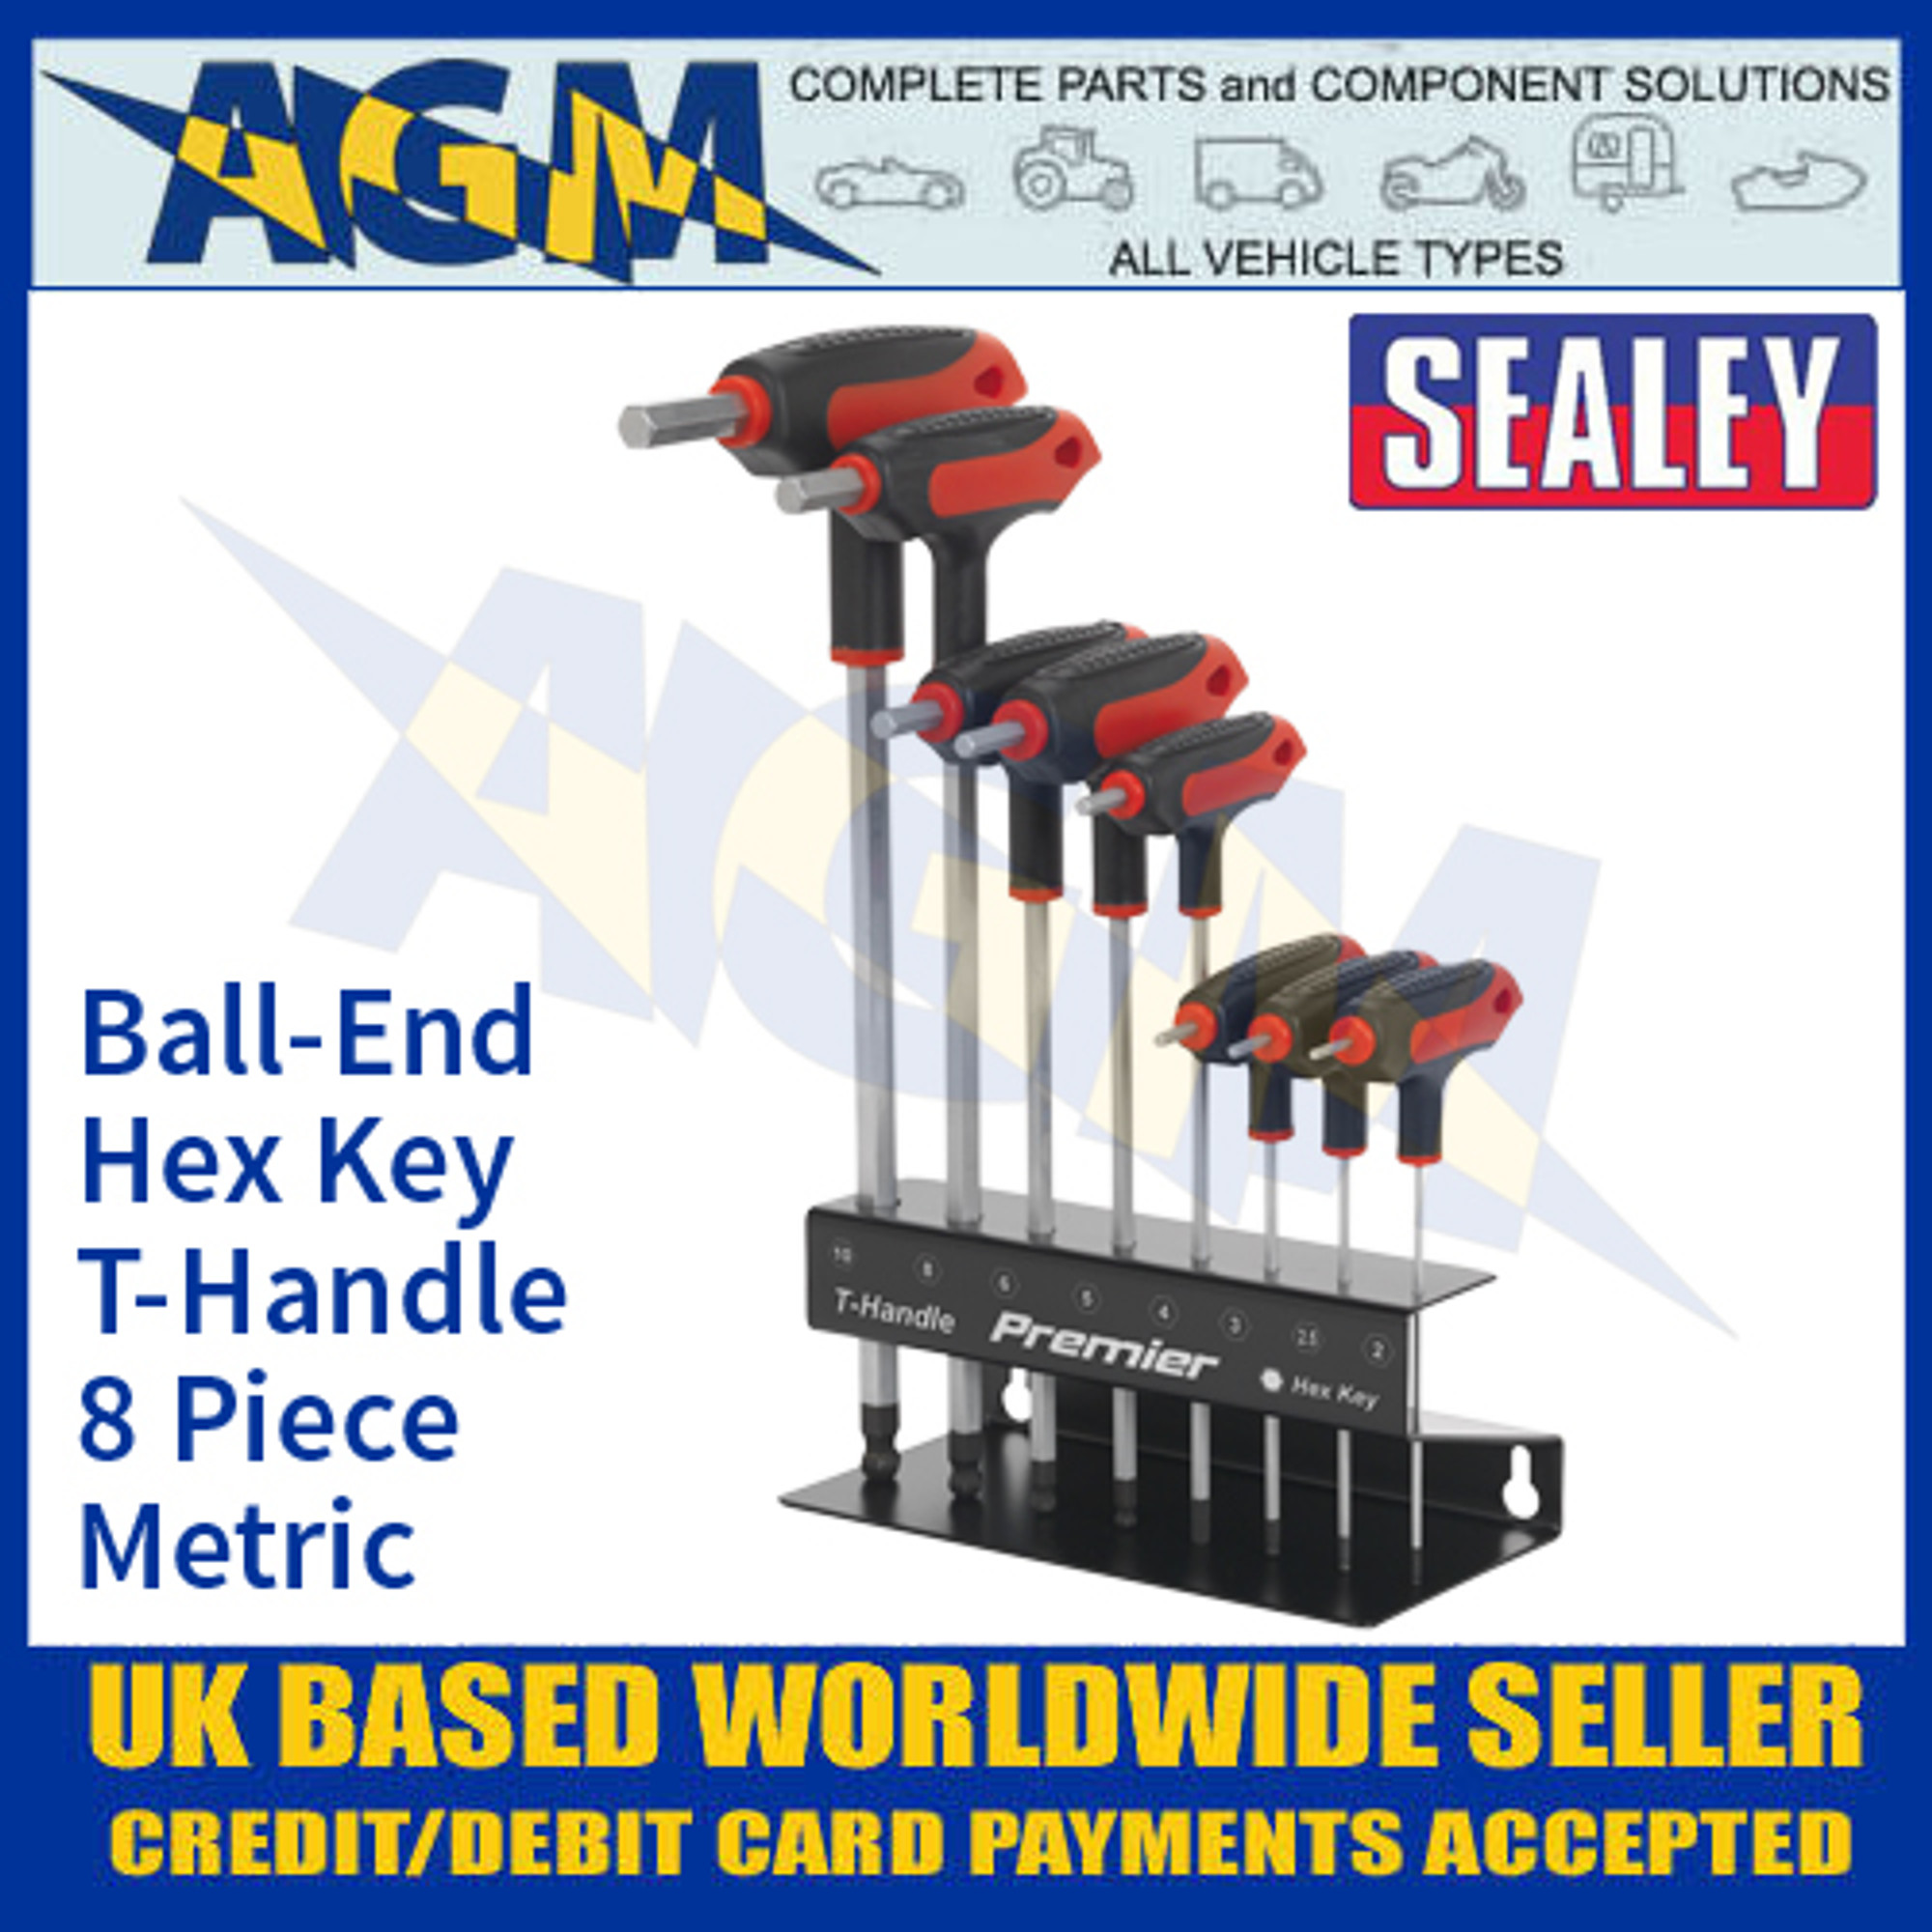 Sealey 11 Piece RED AK7164 Extra-Long Metric Hex//Allen Key Set Including Holder